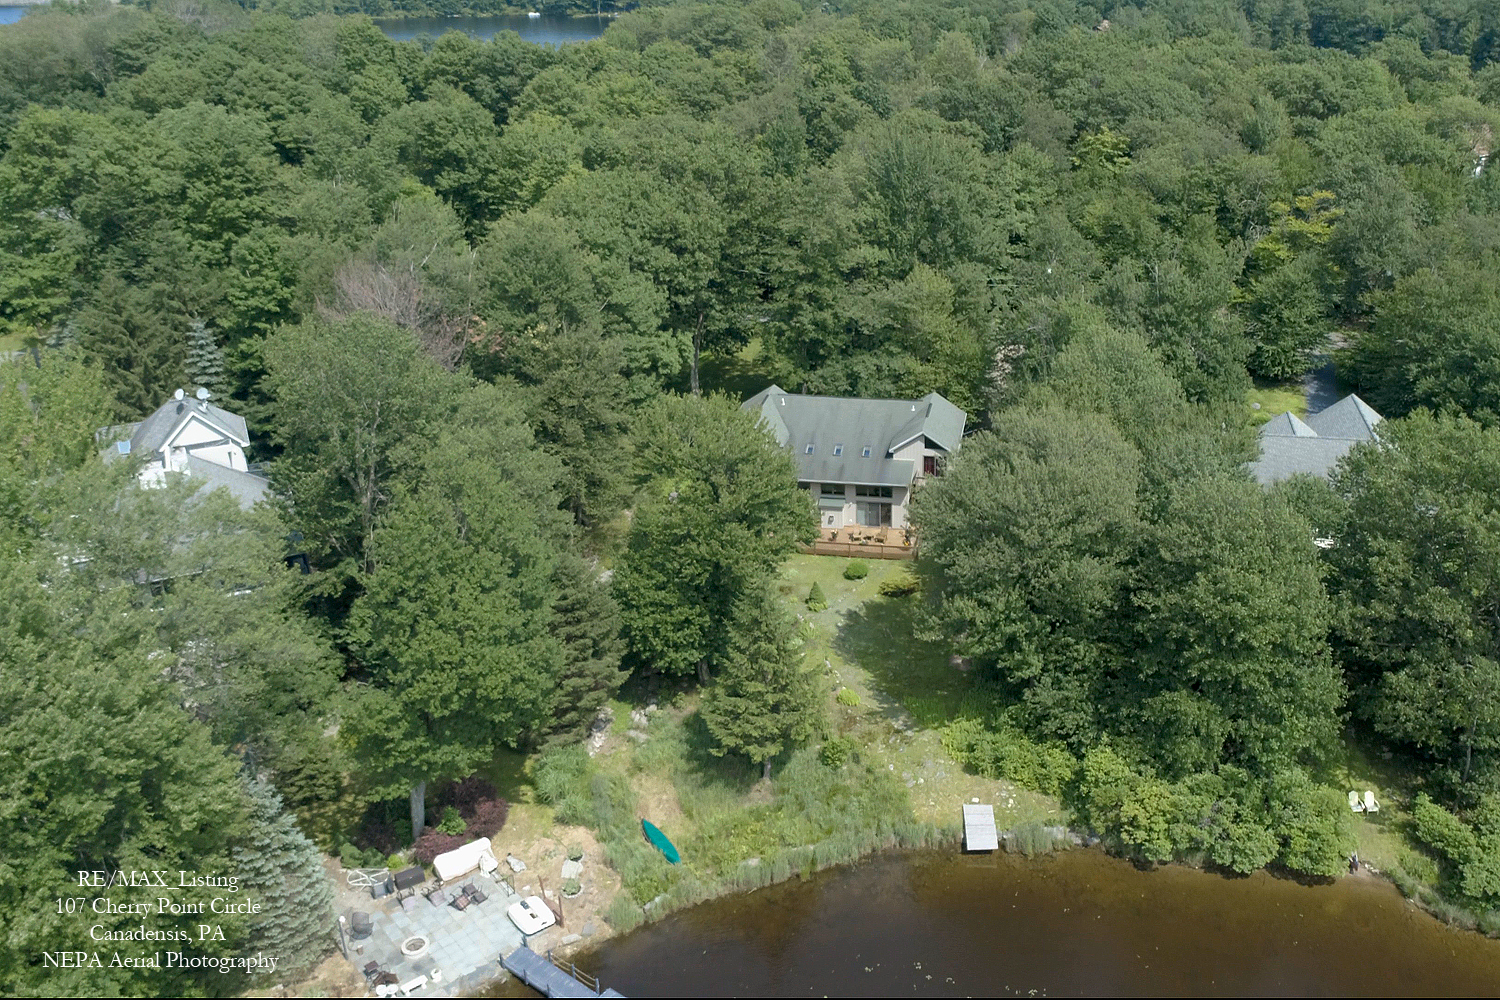 NEPA Aerial Photography and Real Estate